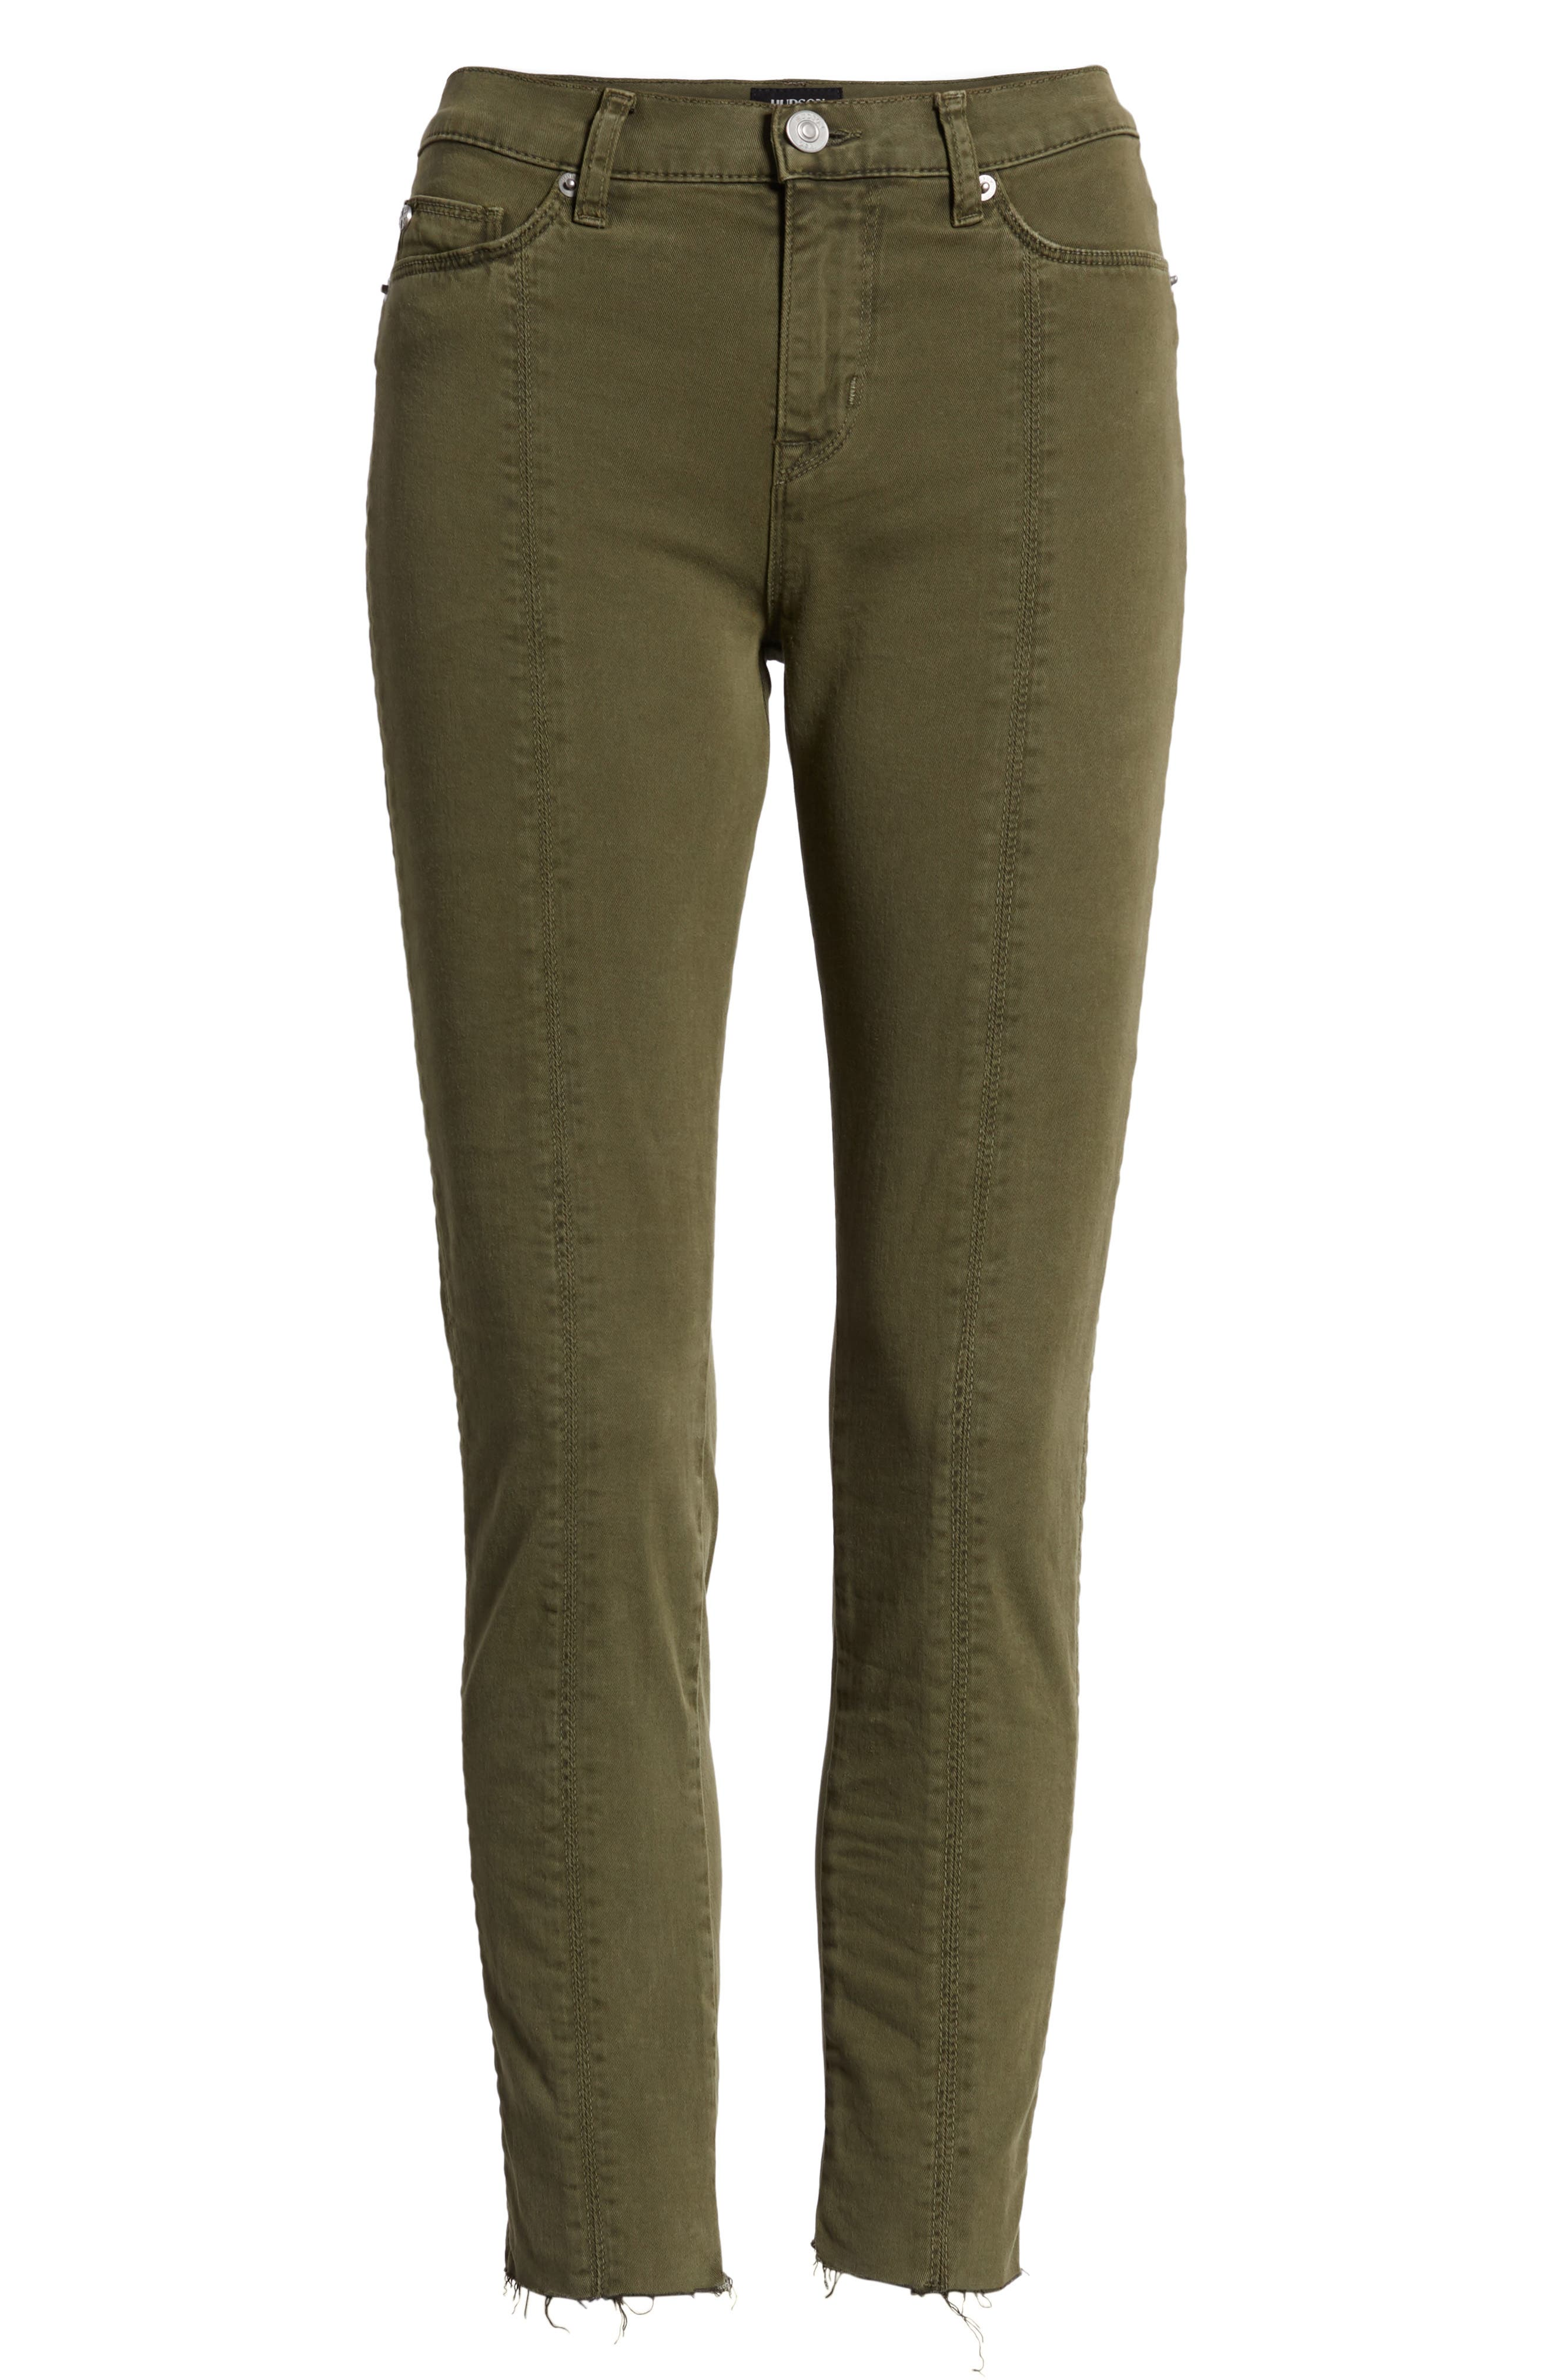 Nico Lace-Up Crop Super Skinny Jeans,                             Alternate thumbnail 7, color,                             Crushed Olive